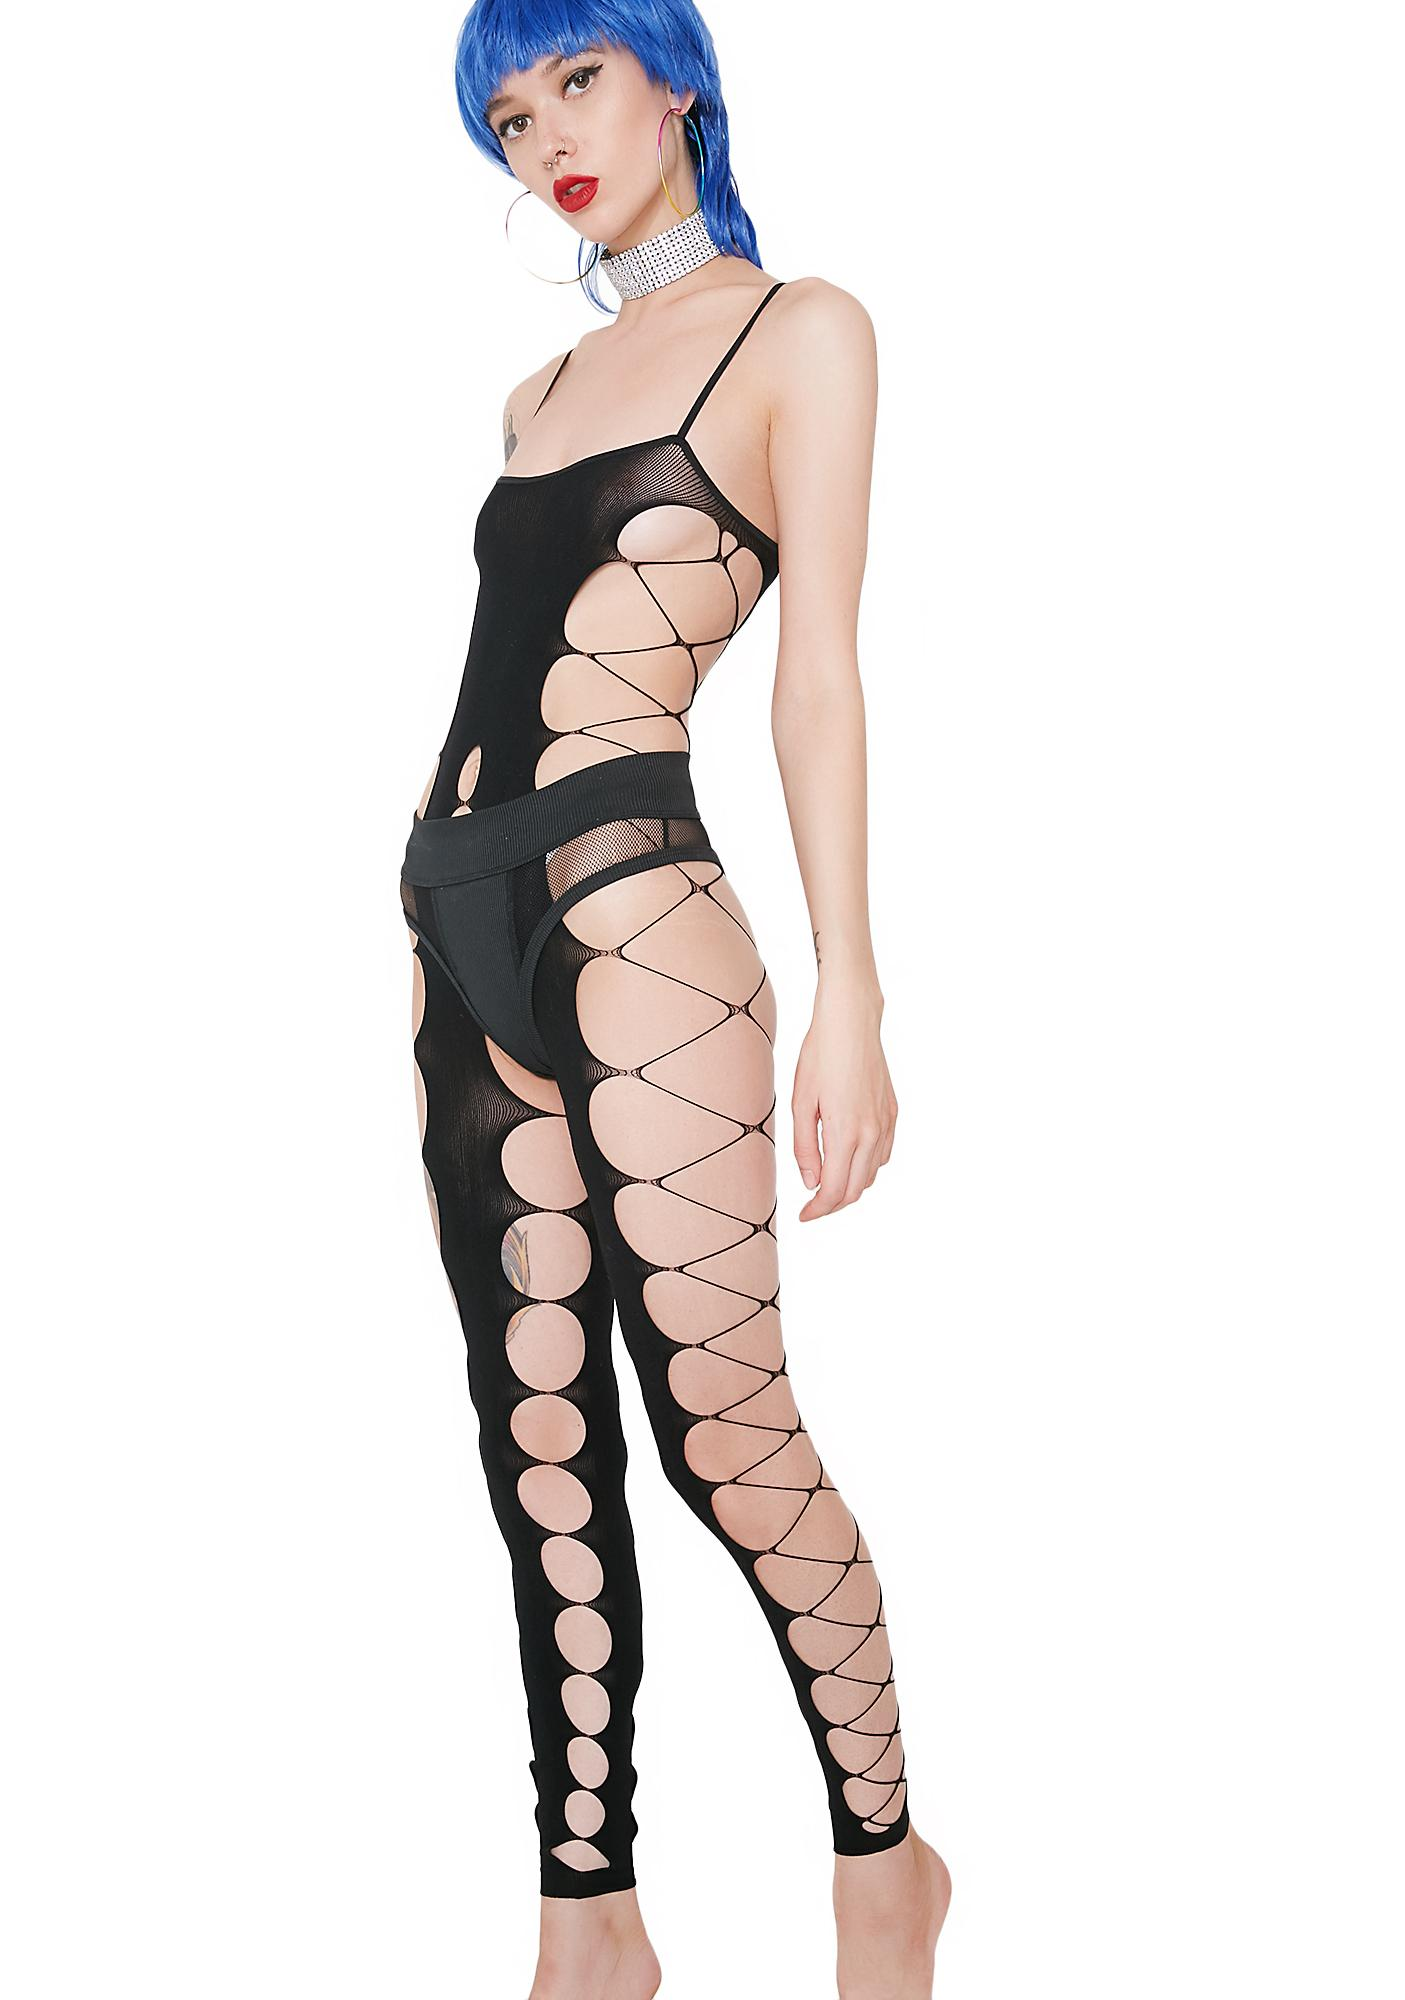 Blackheart Sheer Cut-Out Bodystocking